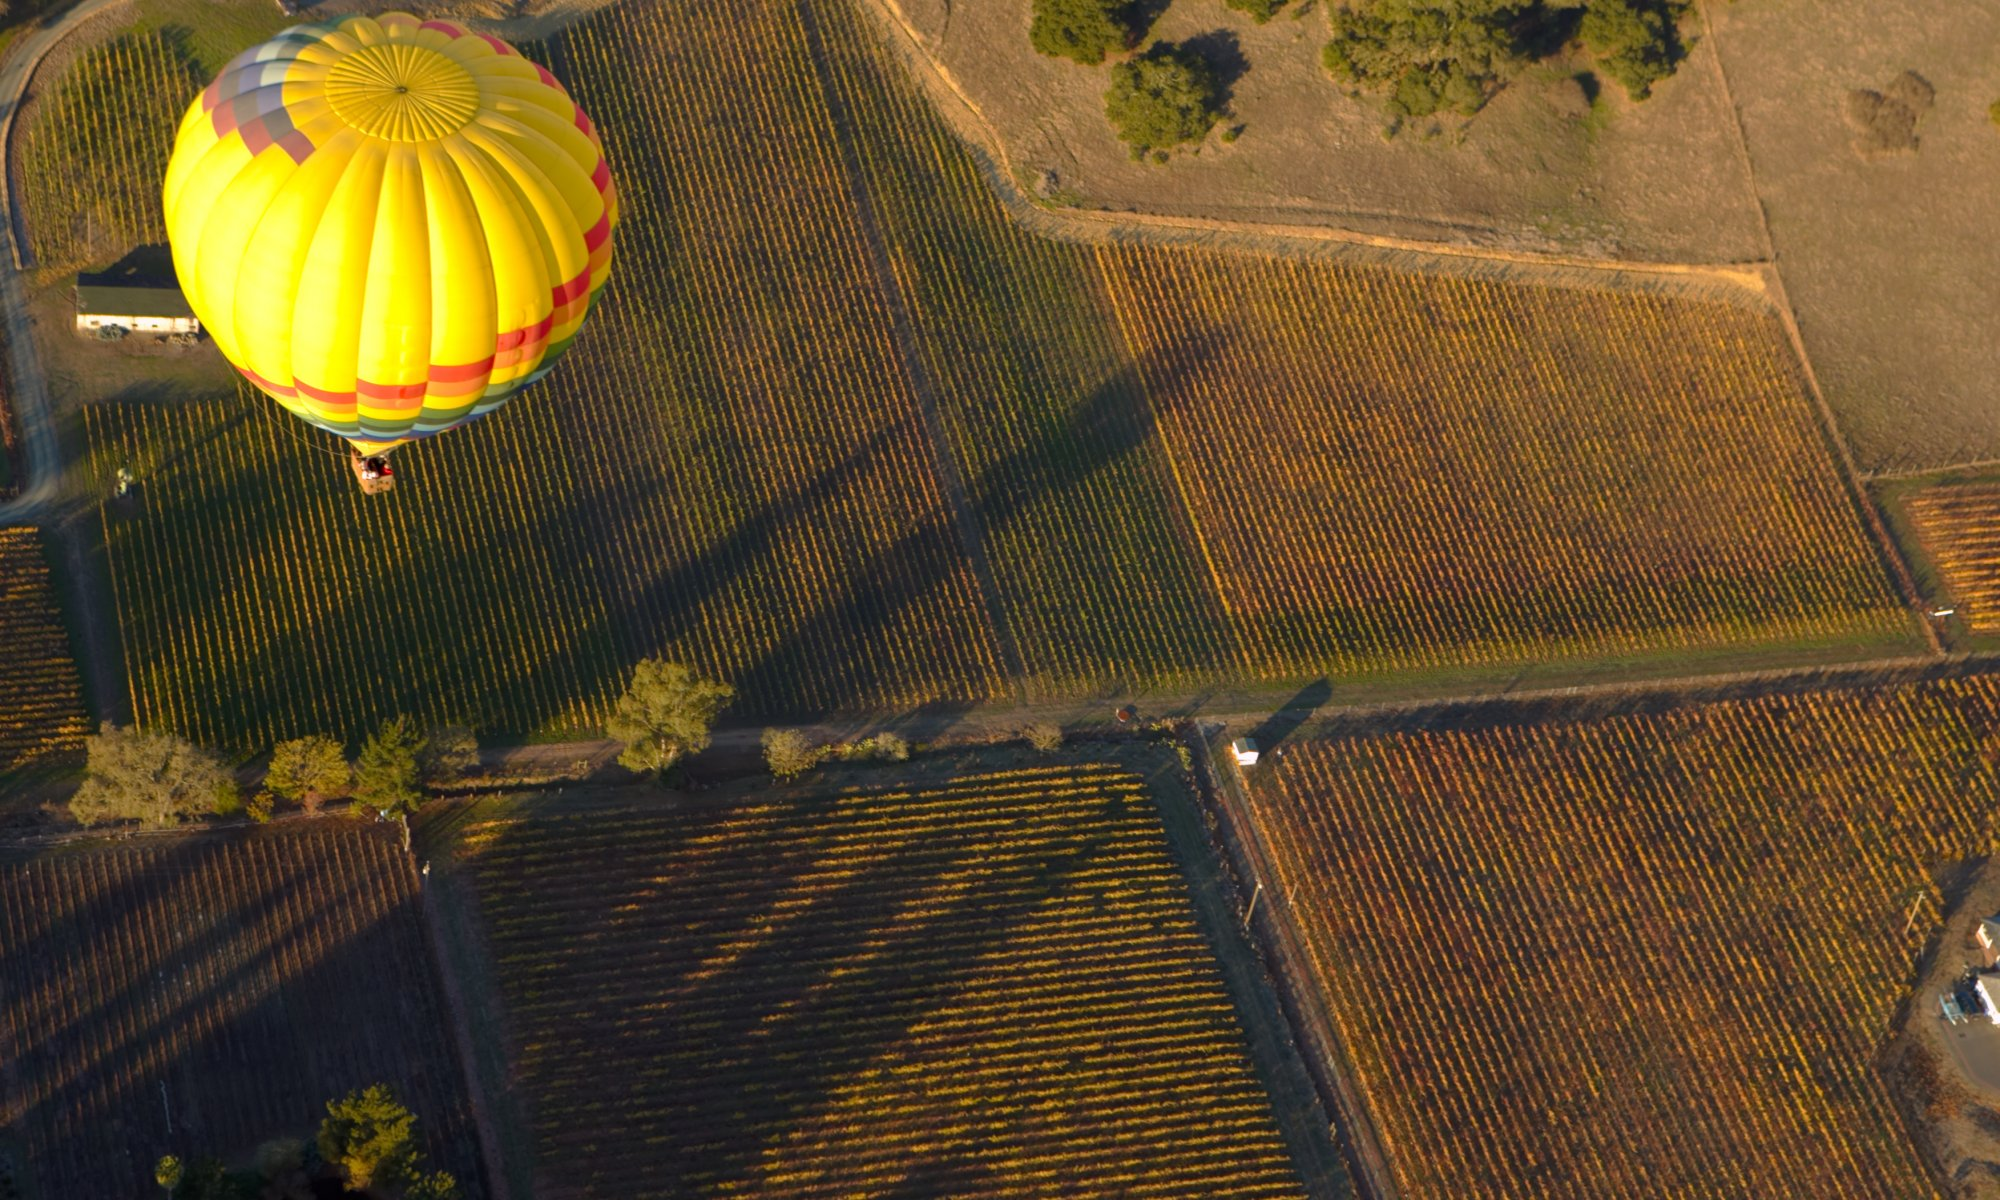 Yellow hot air balloon flying over vast fields of vineyards in Napa Valley